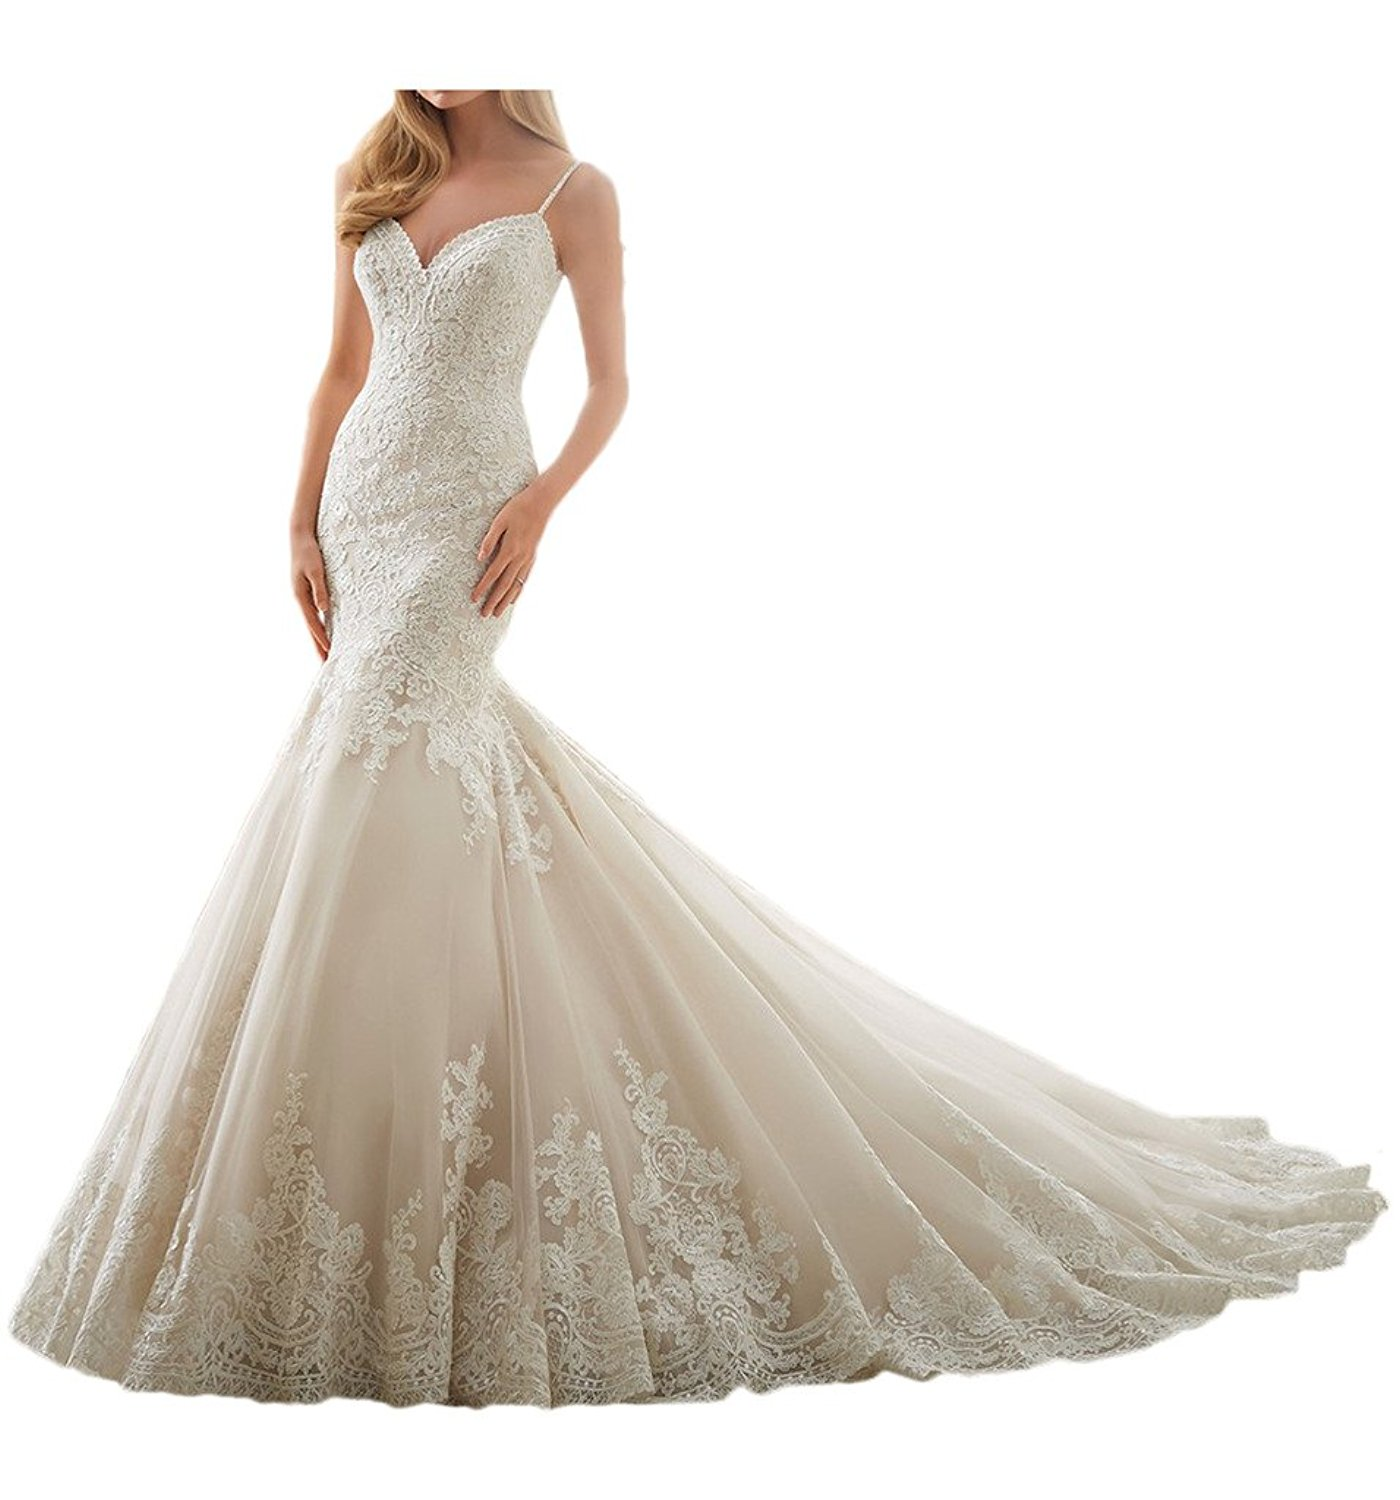 0acc1a54a74 Get Quotations · MILANO BRIDE Gorgeous Wedding Dresses Mermaid Backless  Sweetheart Floral Lace